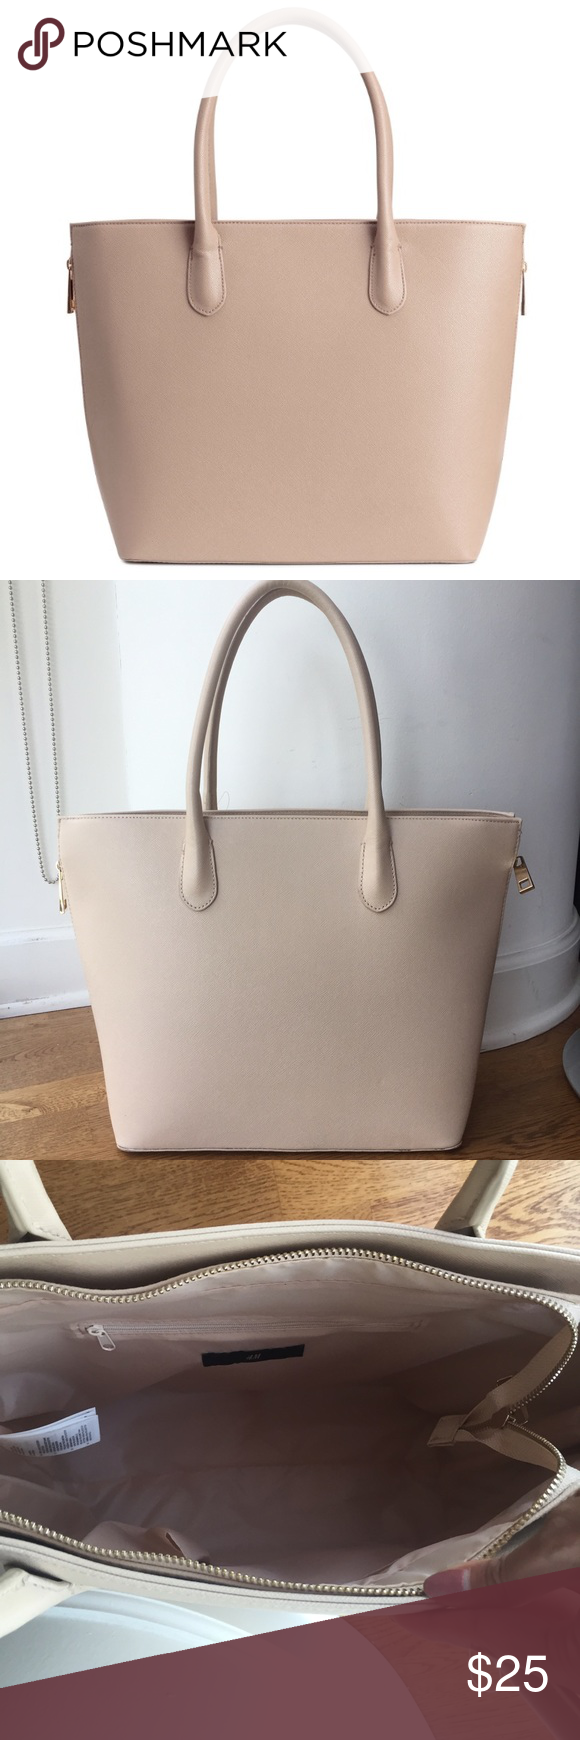 H M Light Taupe Purse Light taupe H M Purse. Has gold zippers on each side, 22783851b2